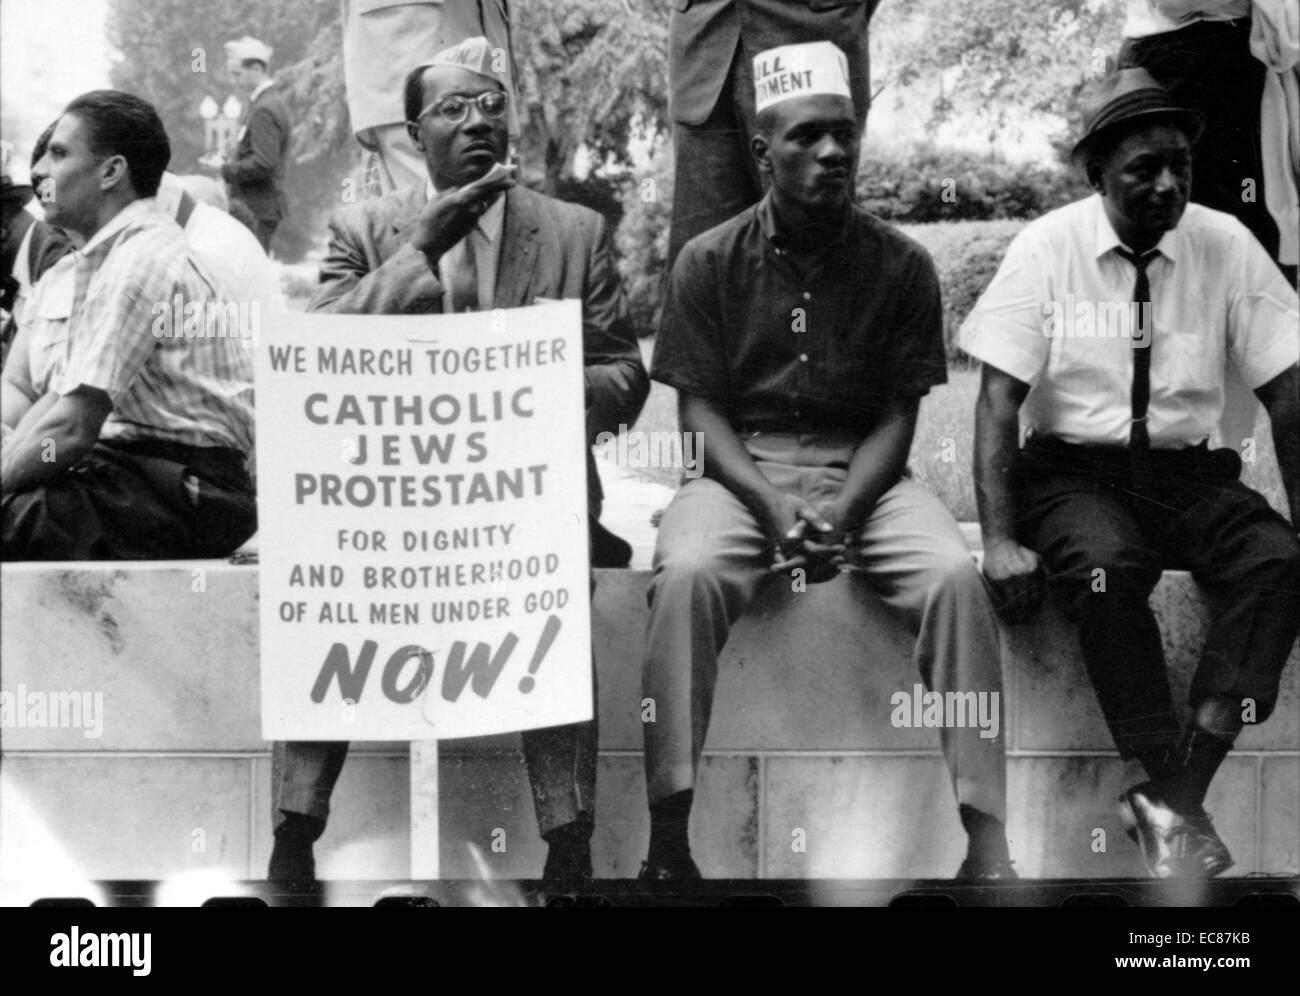 Photograph of a civil rights march from Selma to Montgomery, Alabama. Dated 1965 - Stock Image